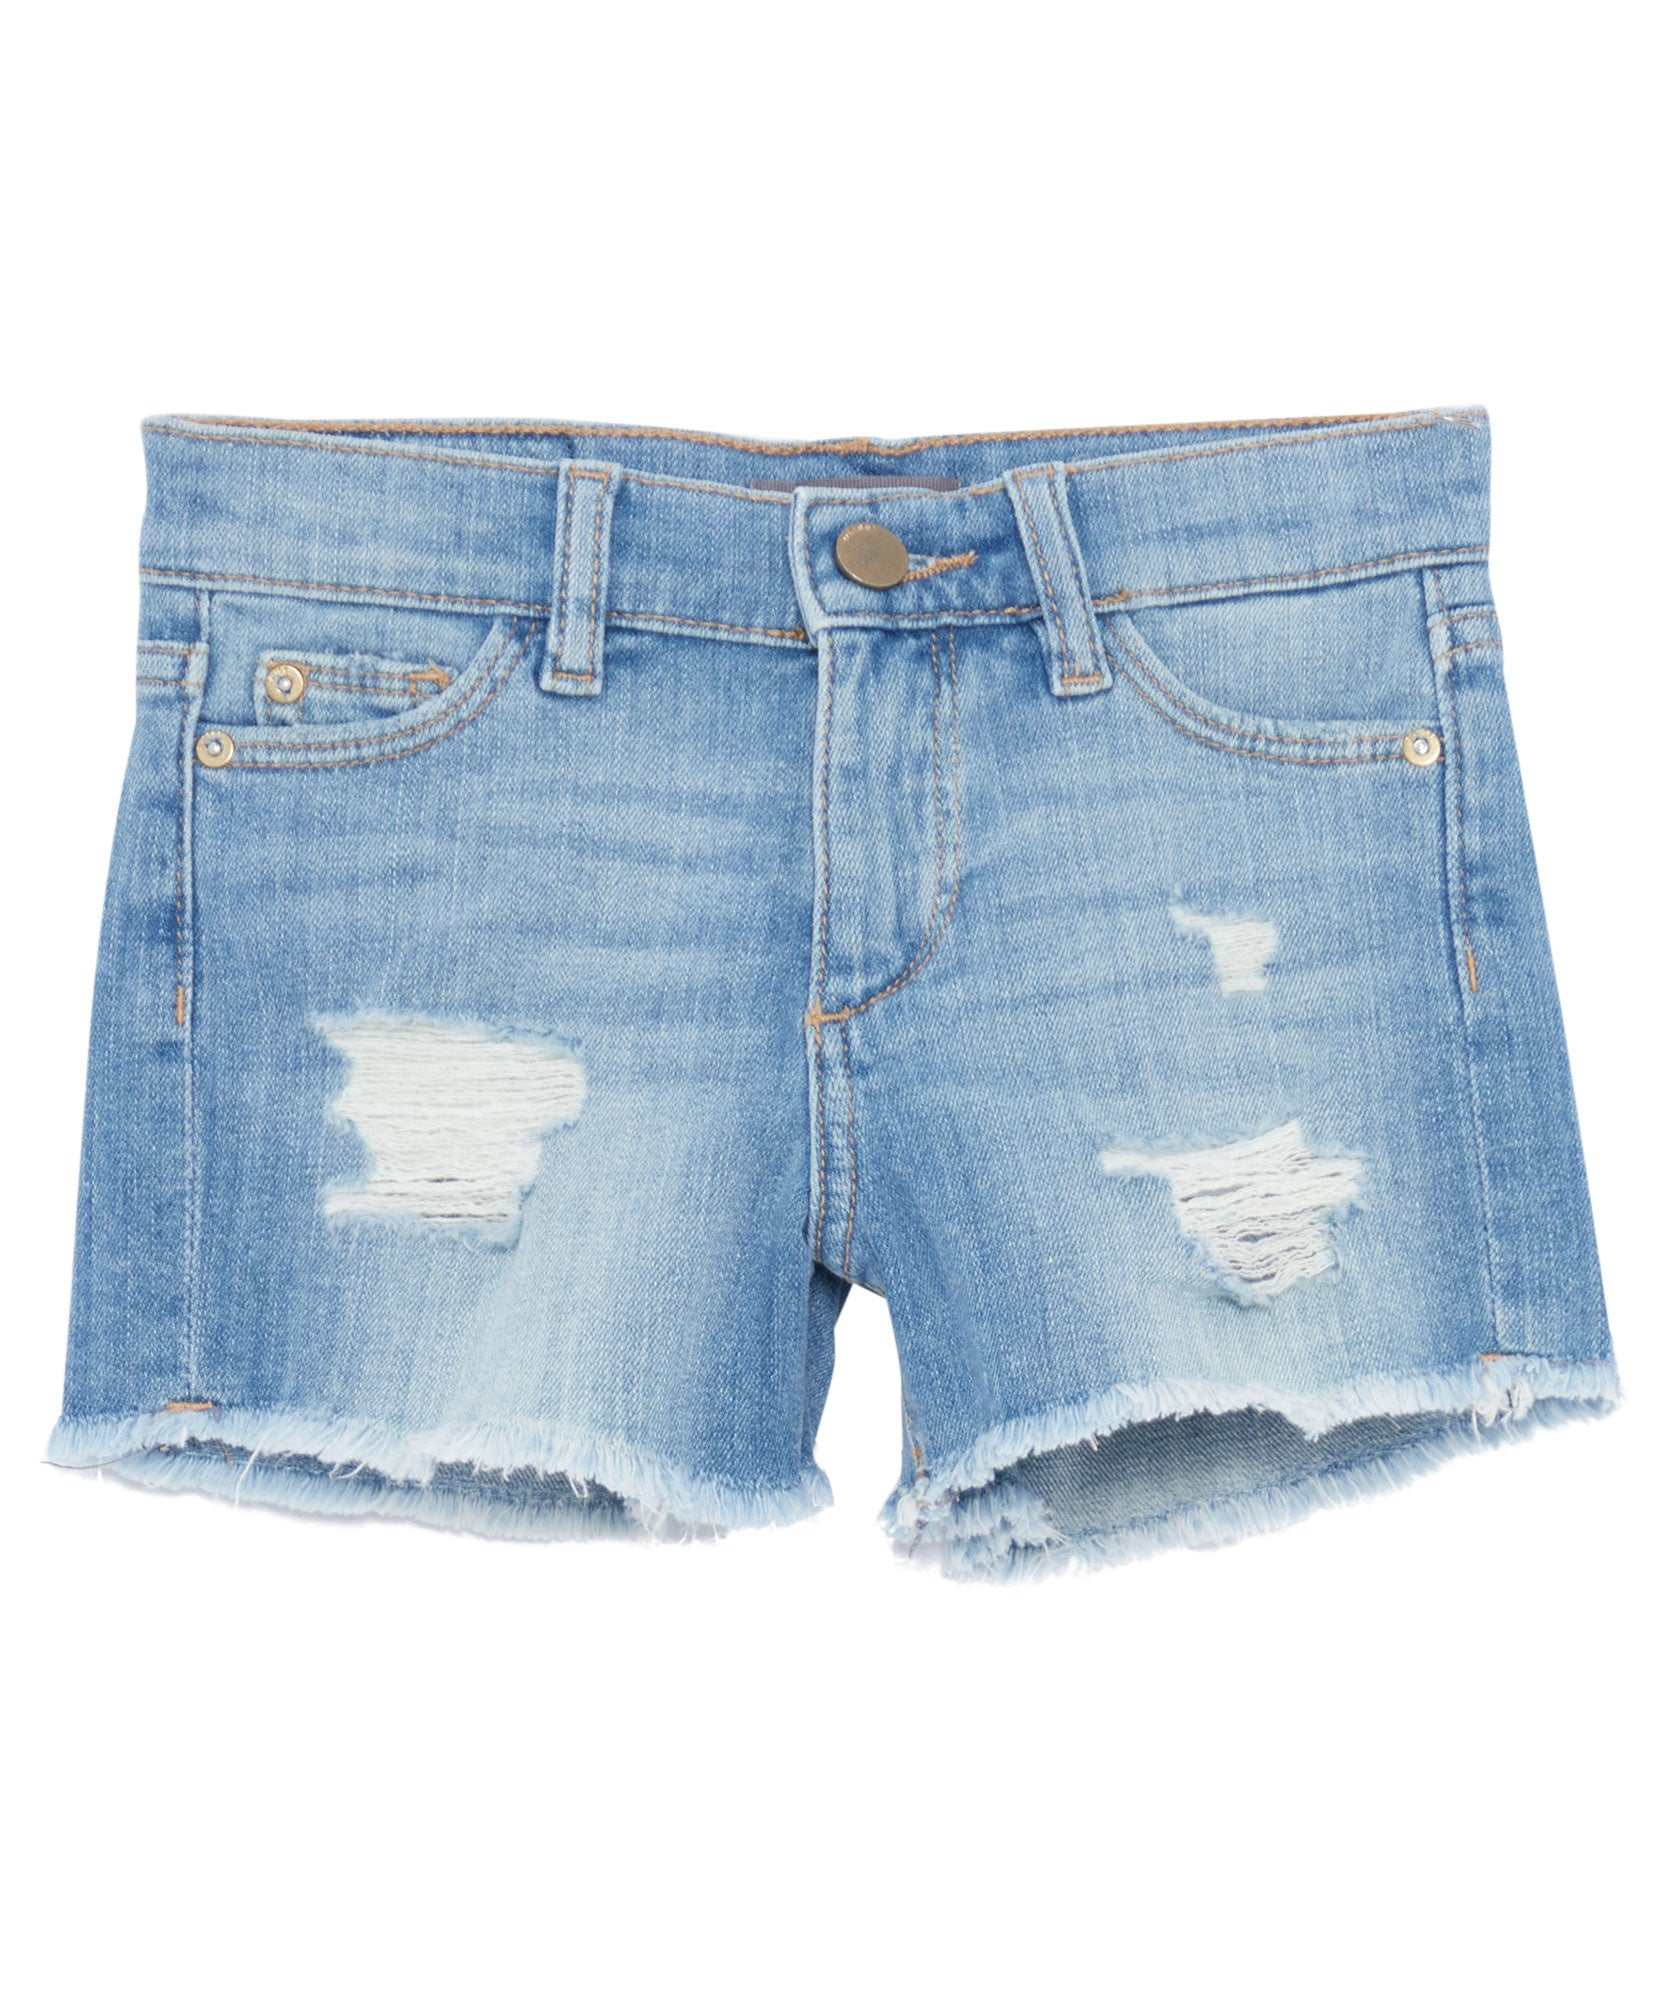 Lucy Frost Denim Shorts